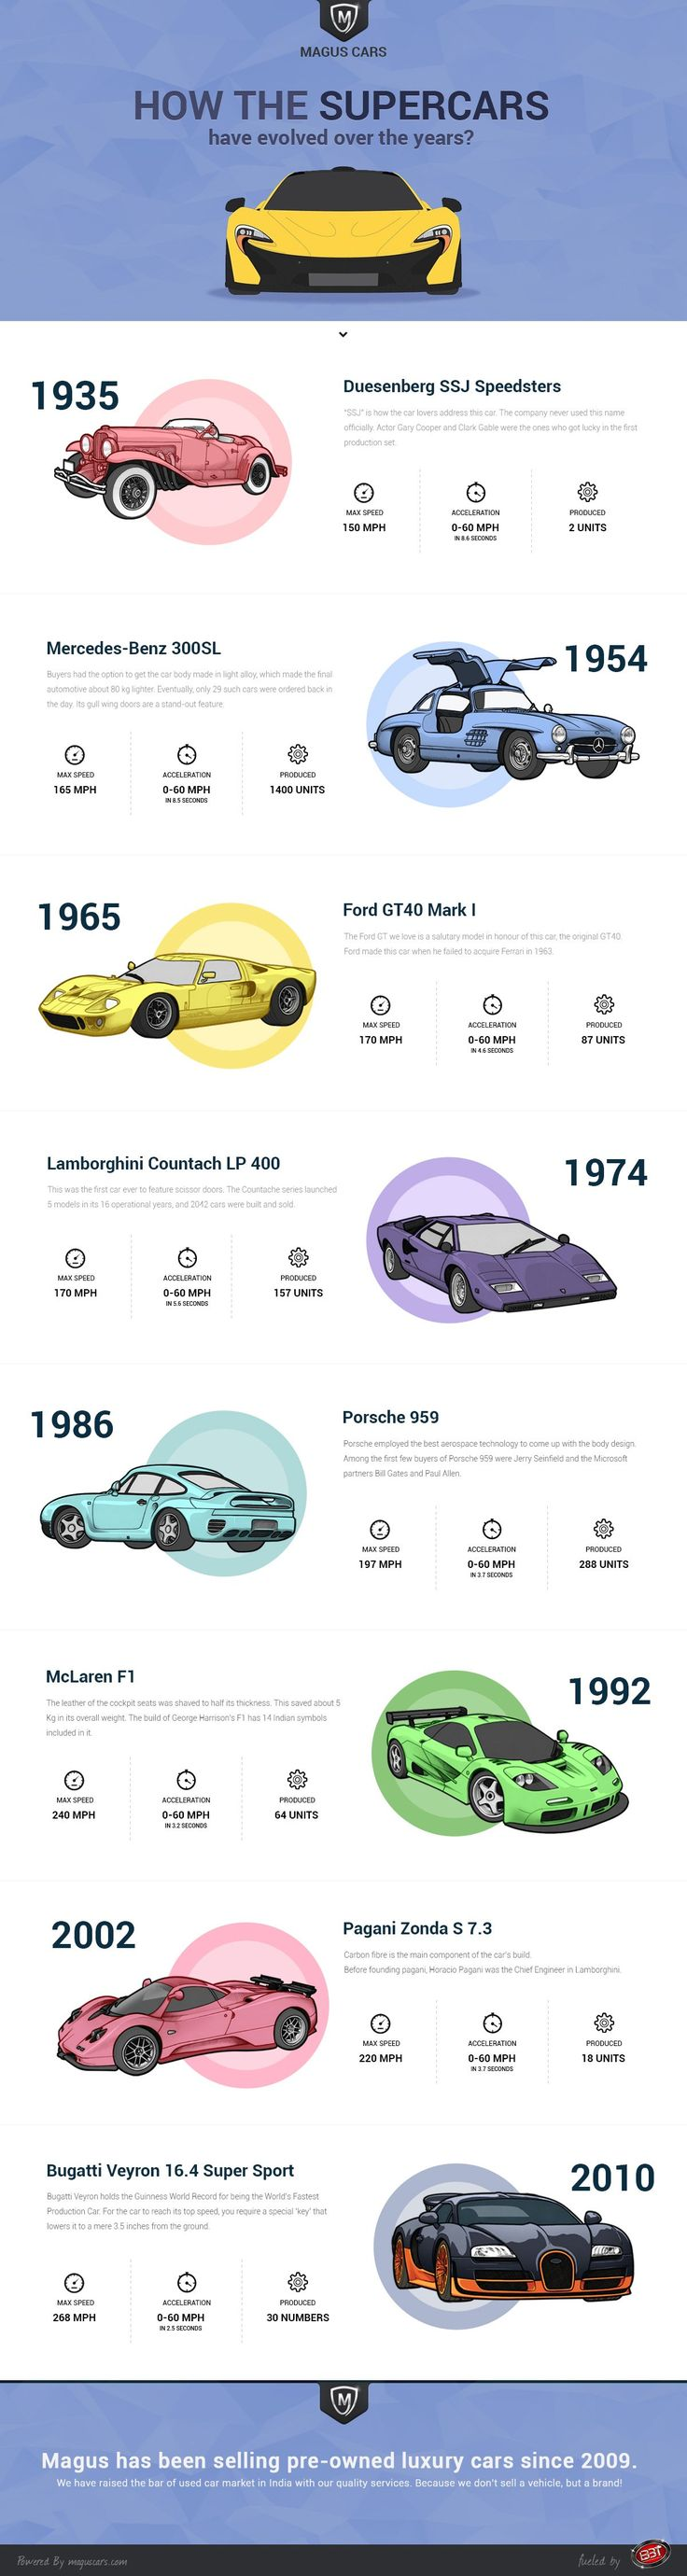 How The Supercars Have Evolved Over The Years?